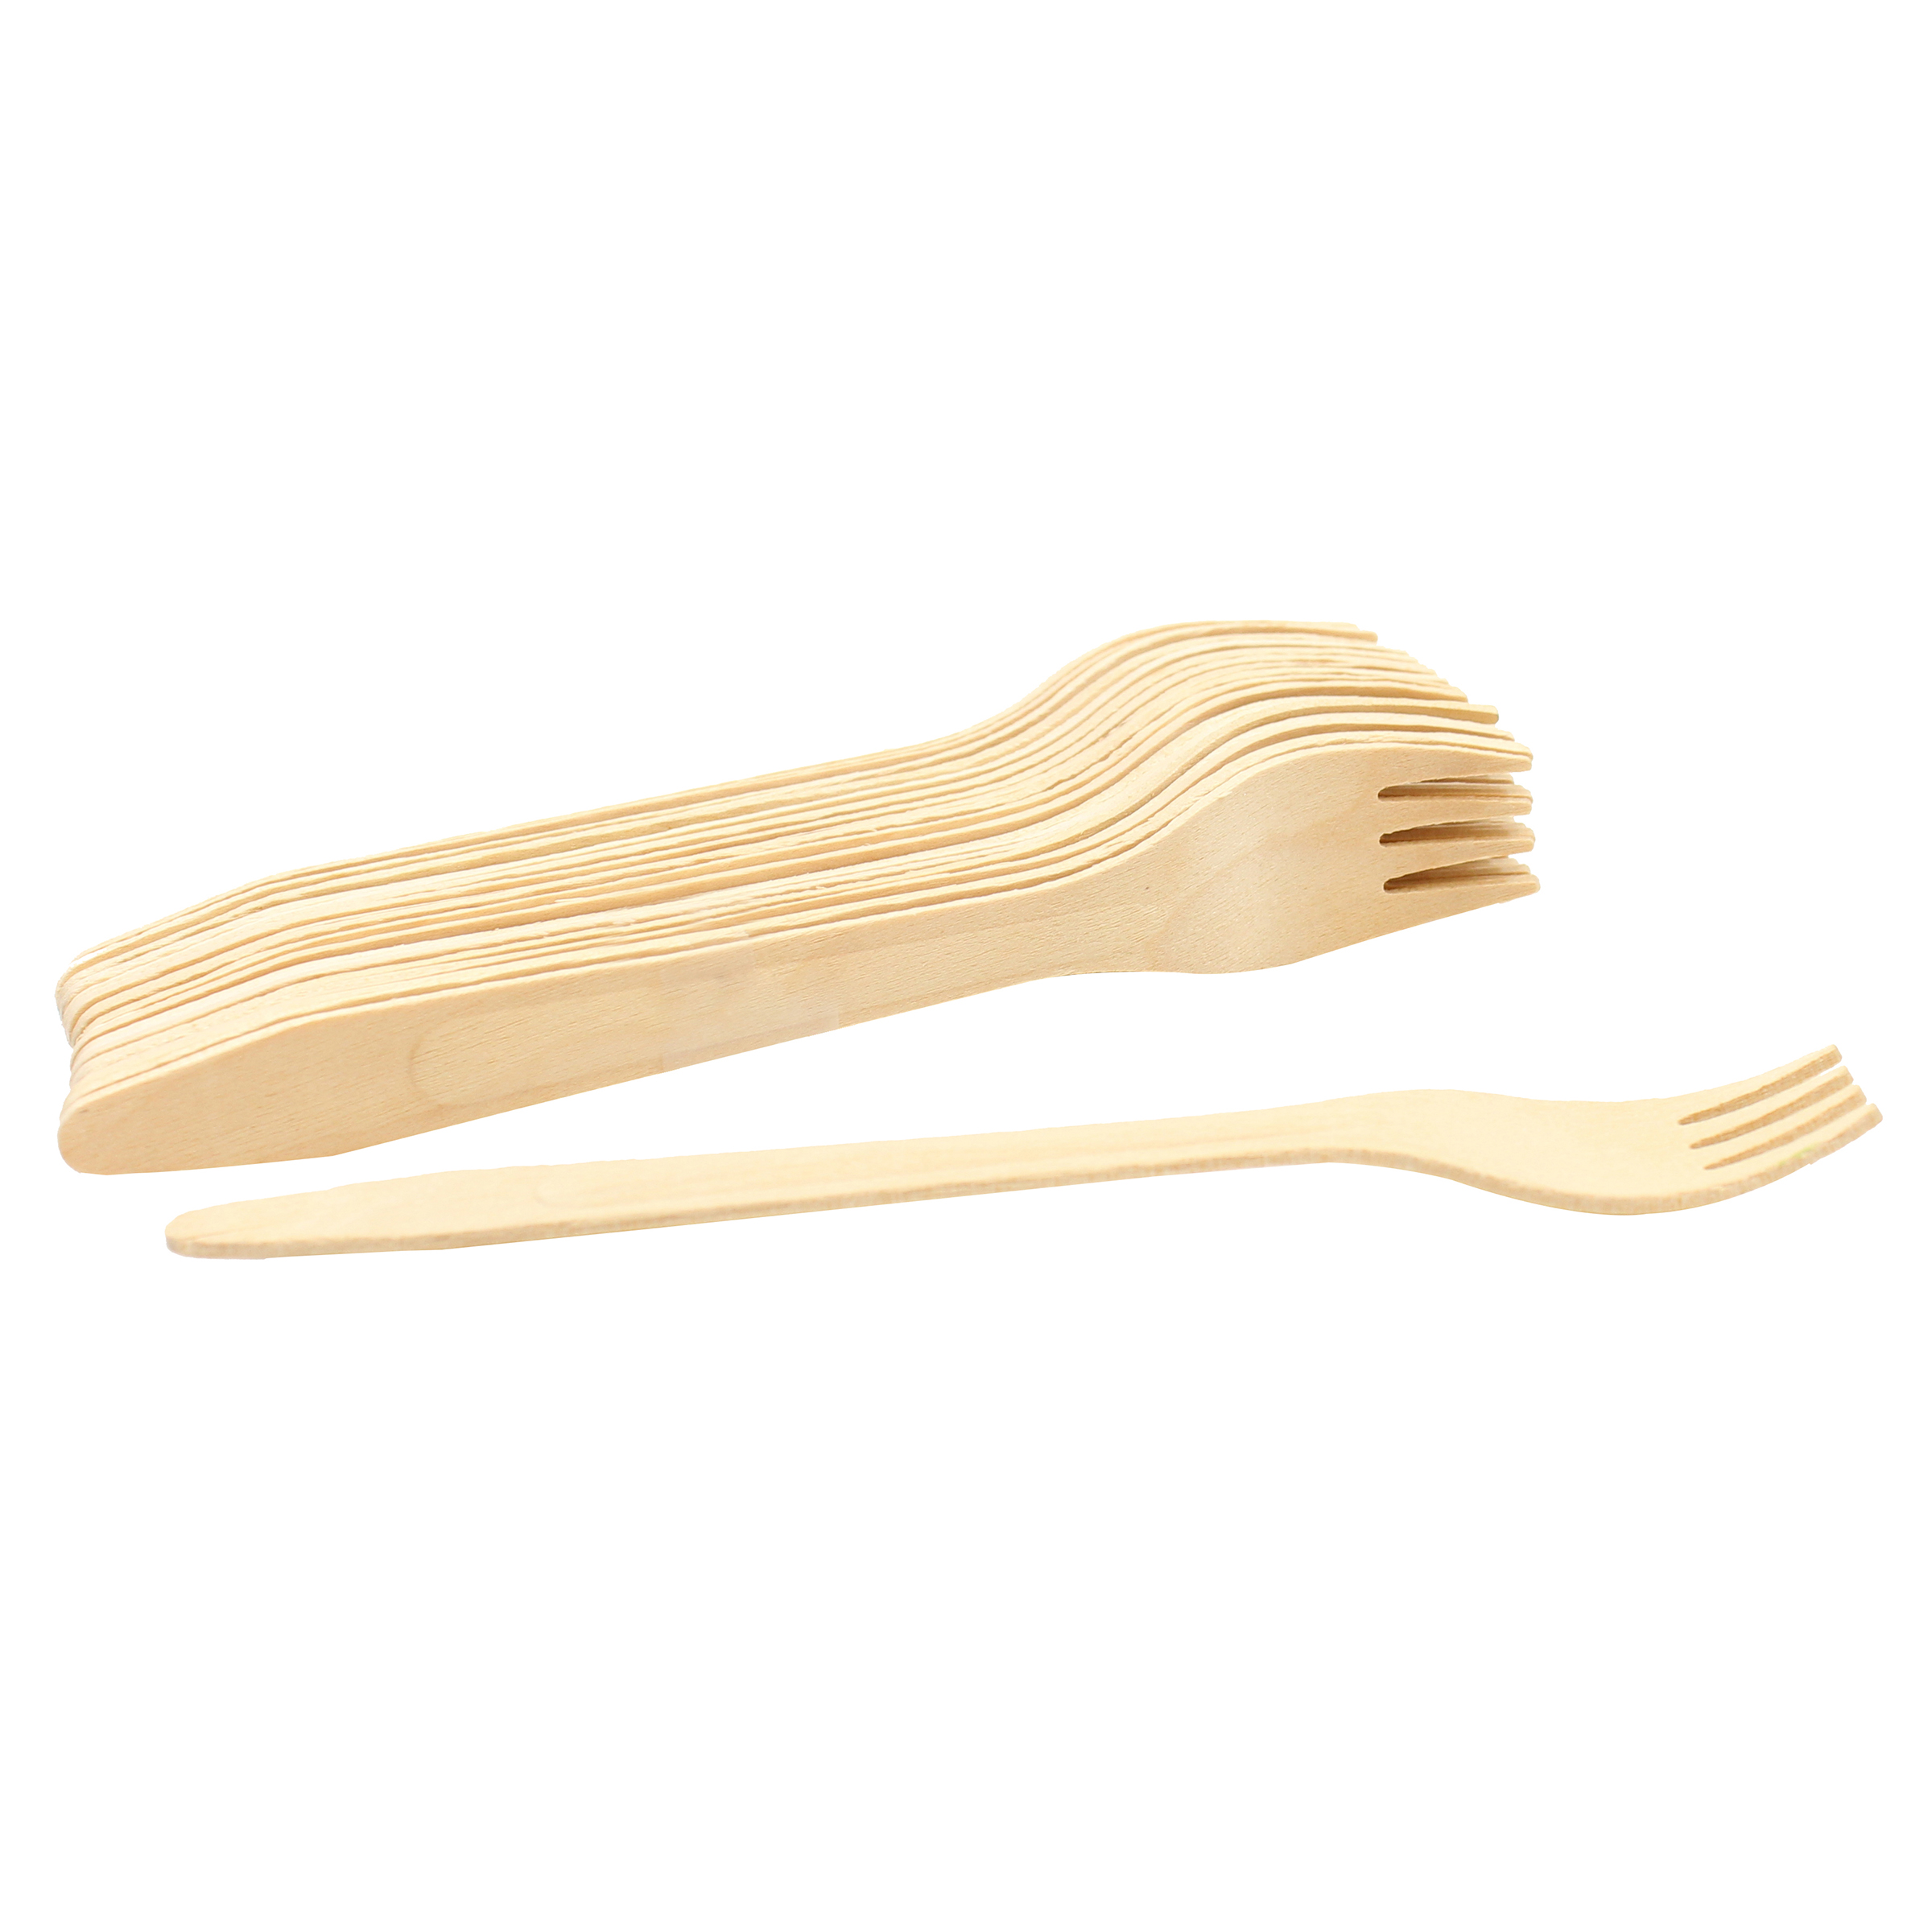 TableCraft Products 654320 disposable bamboo & accessories